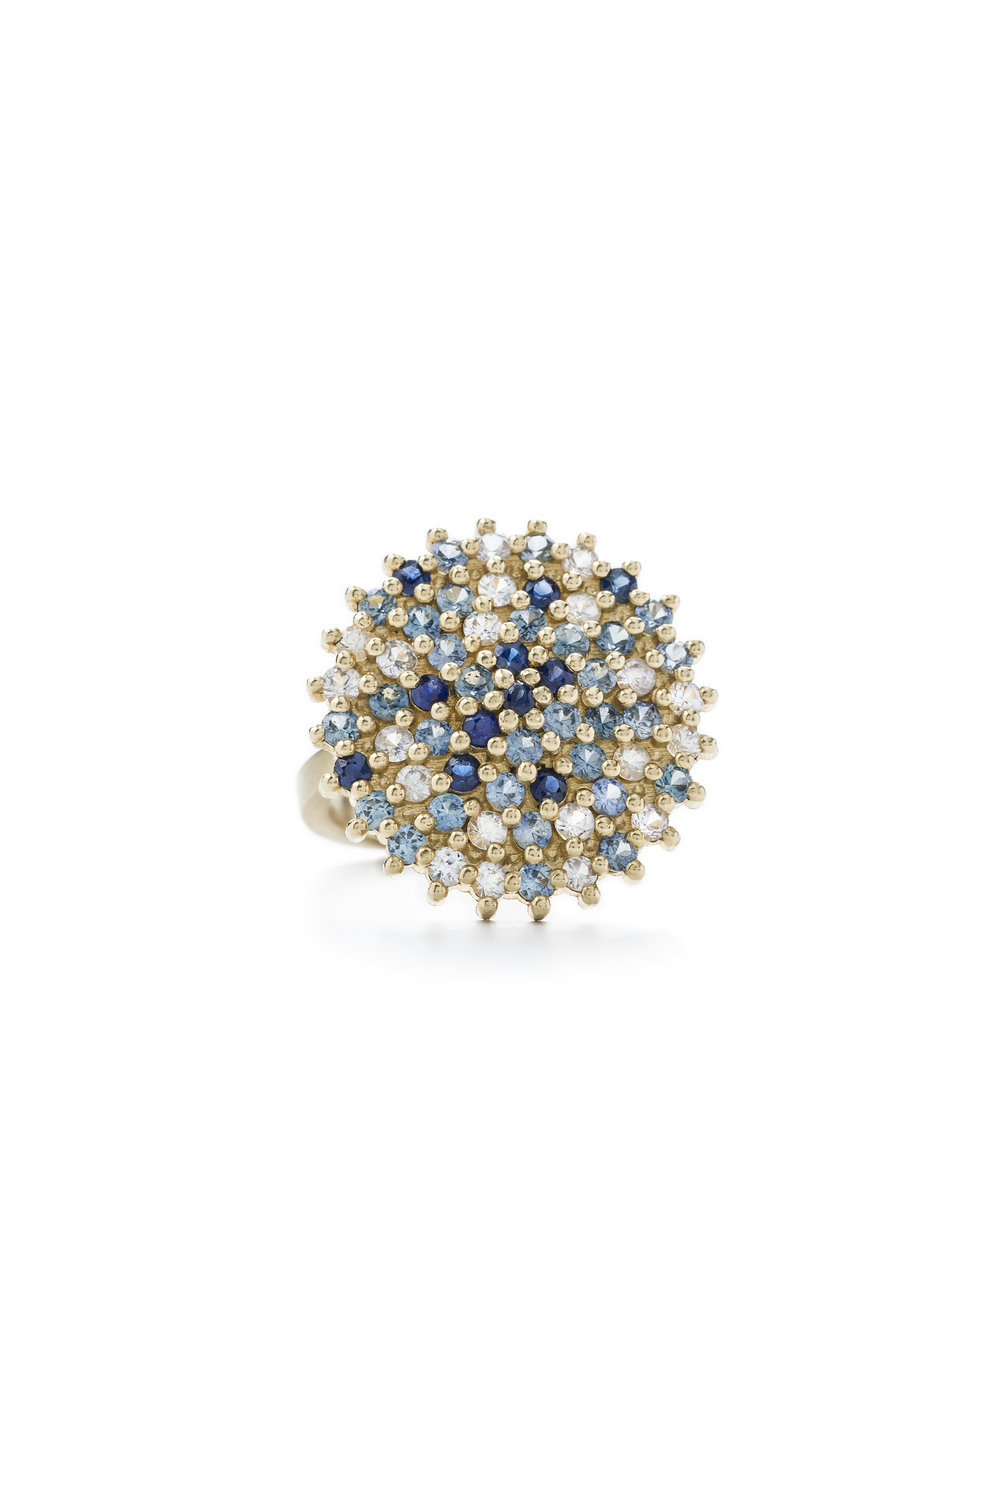 Multi coloured sapphire star cocktail ring in gold